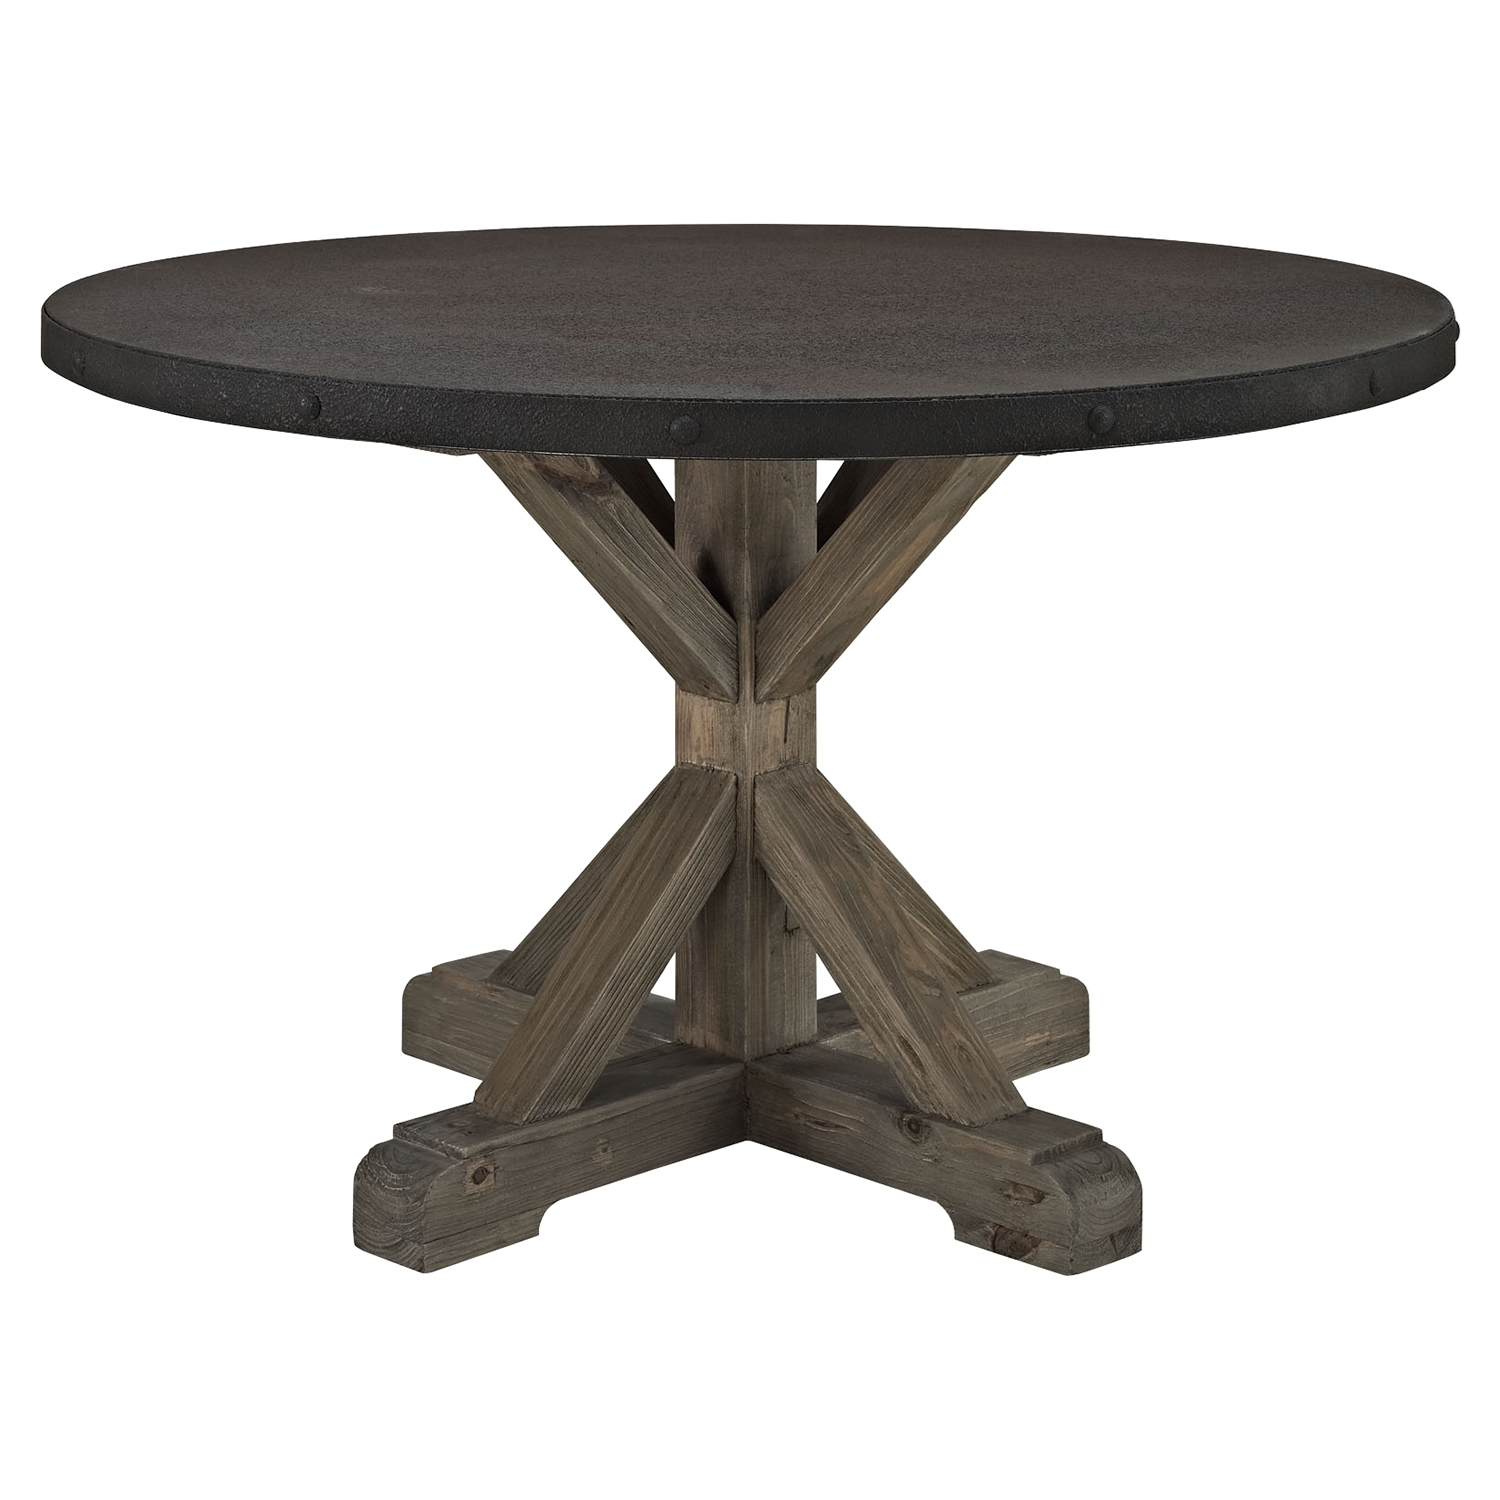 Stitch Wood Top Dining Table - Brown - EEI-1207-BRN-SET